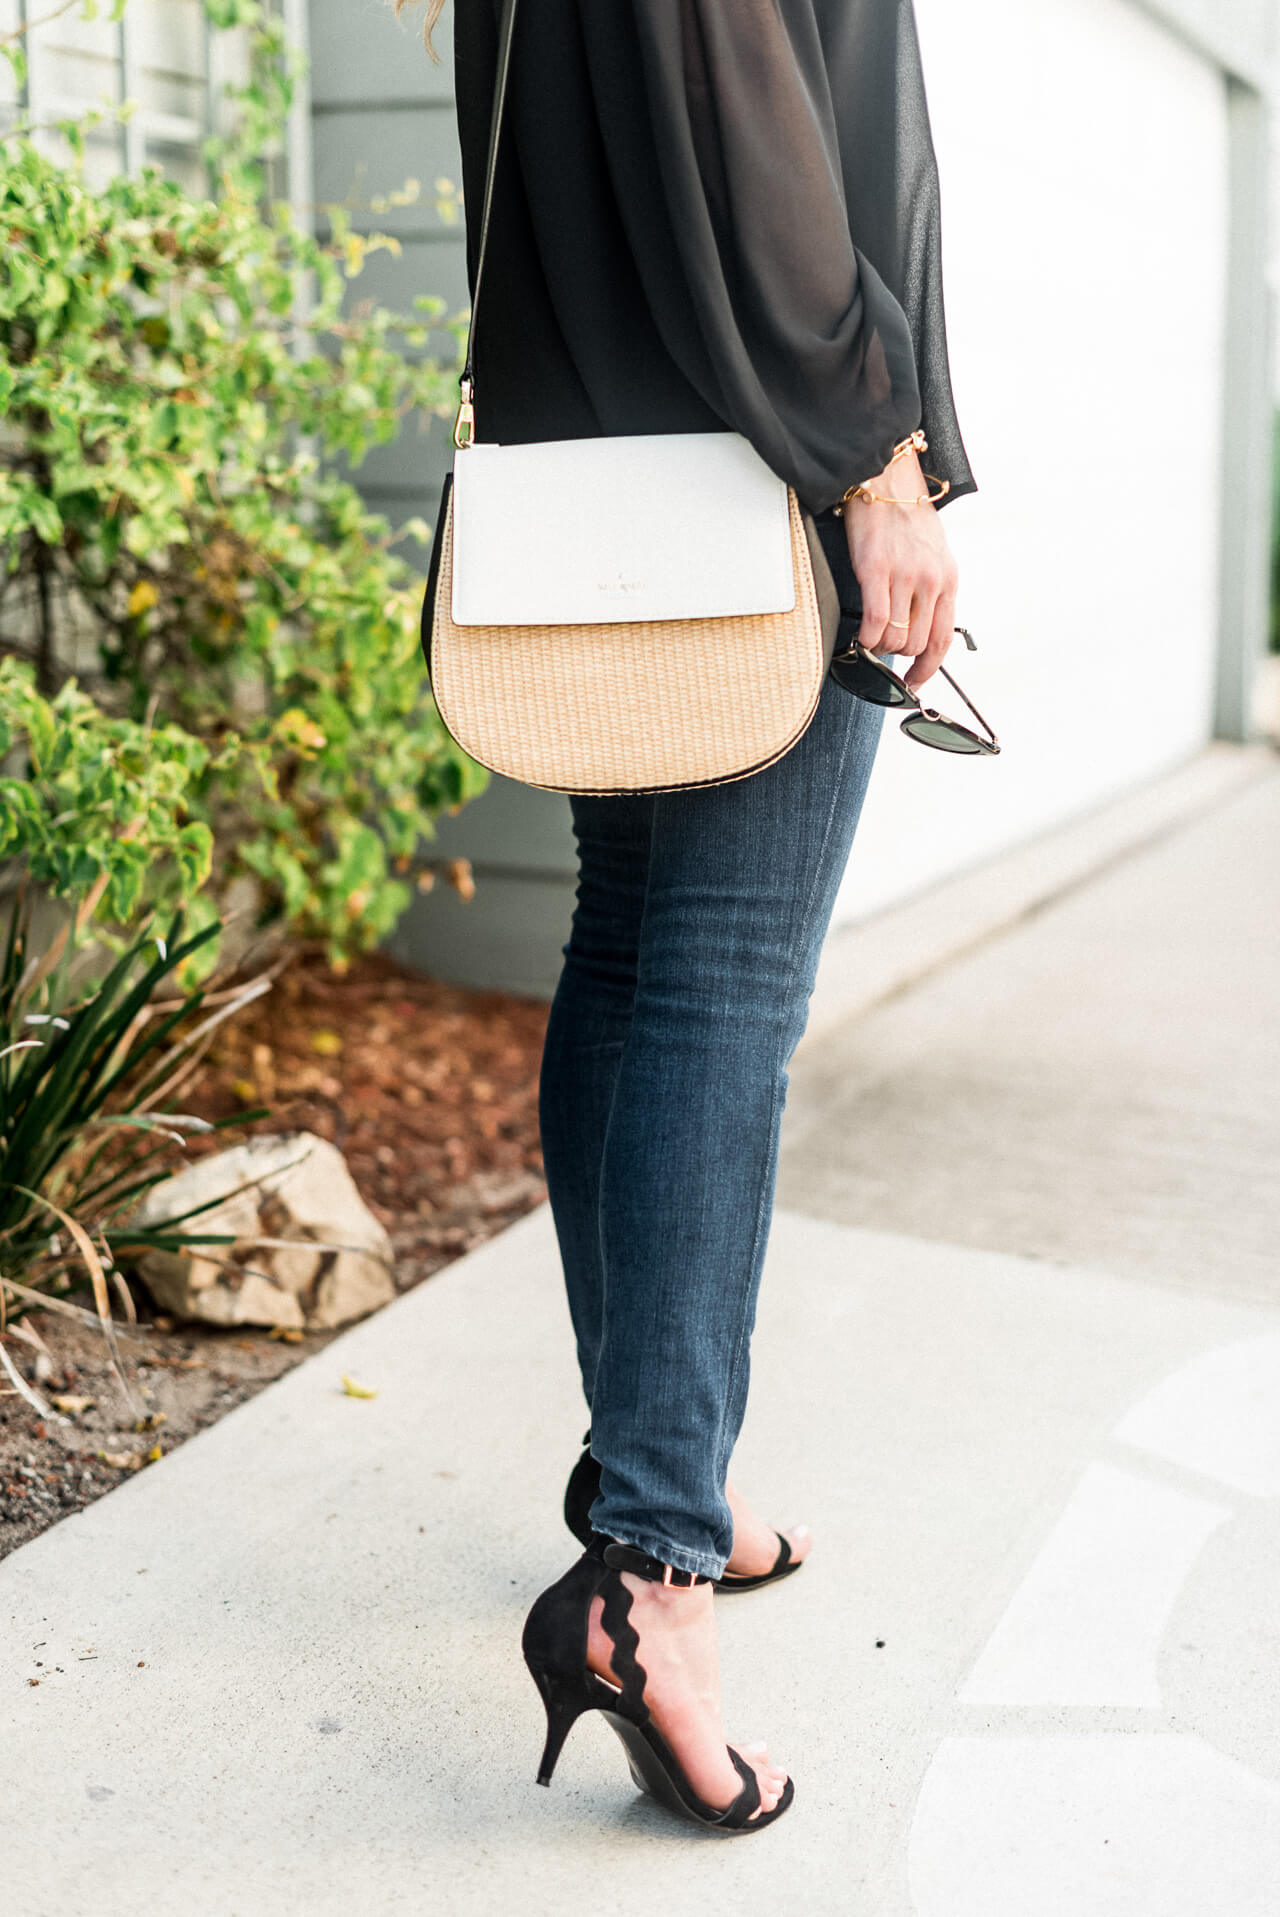 I've always used this bag for day-to-day outfits but love the contrast it brings for this night look - M Loves M @marmar